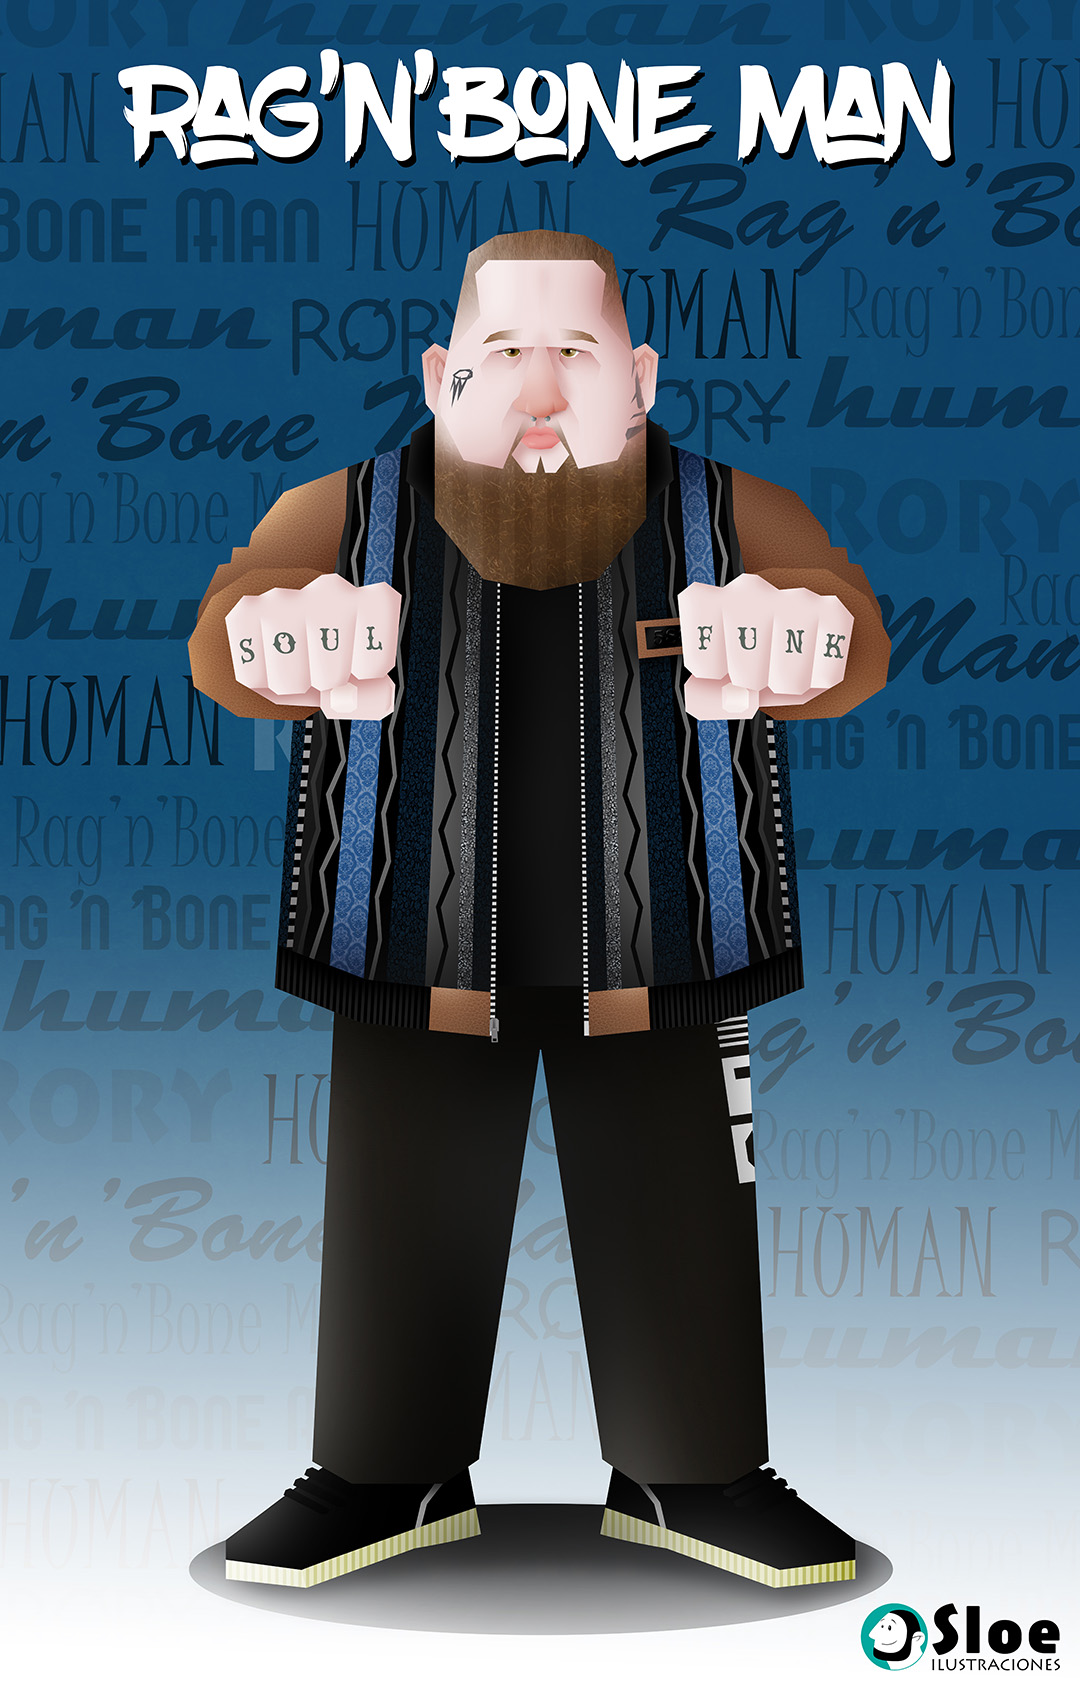 Rag'n'bone man 2018